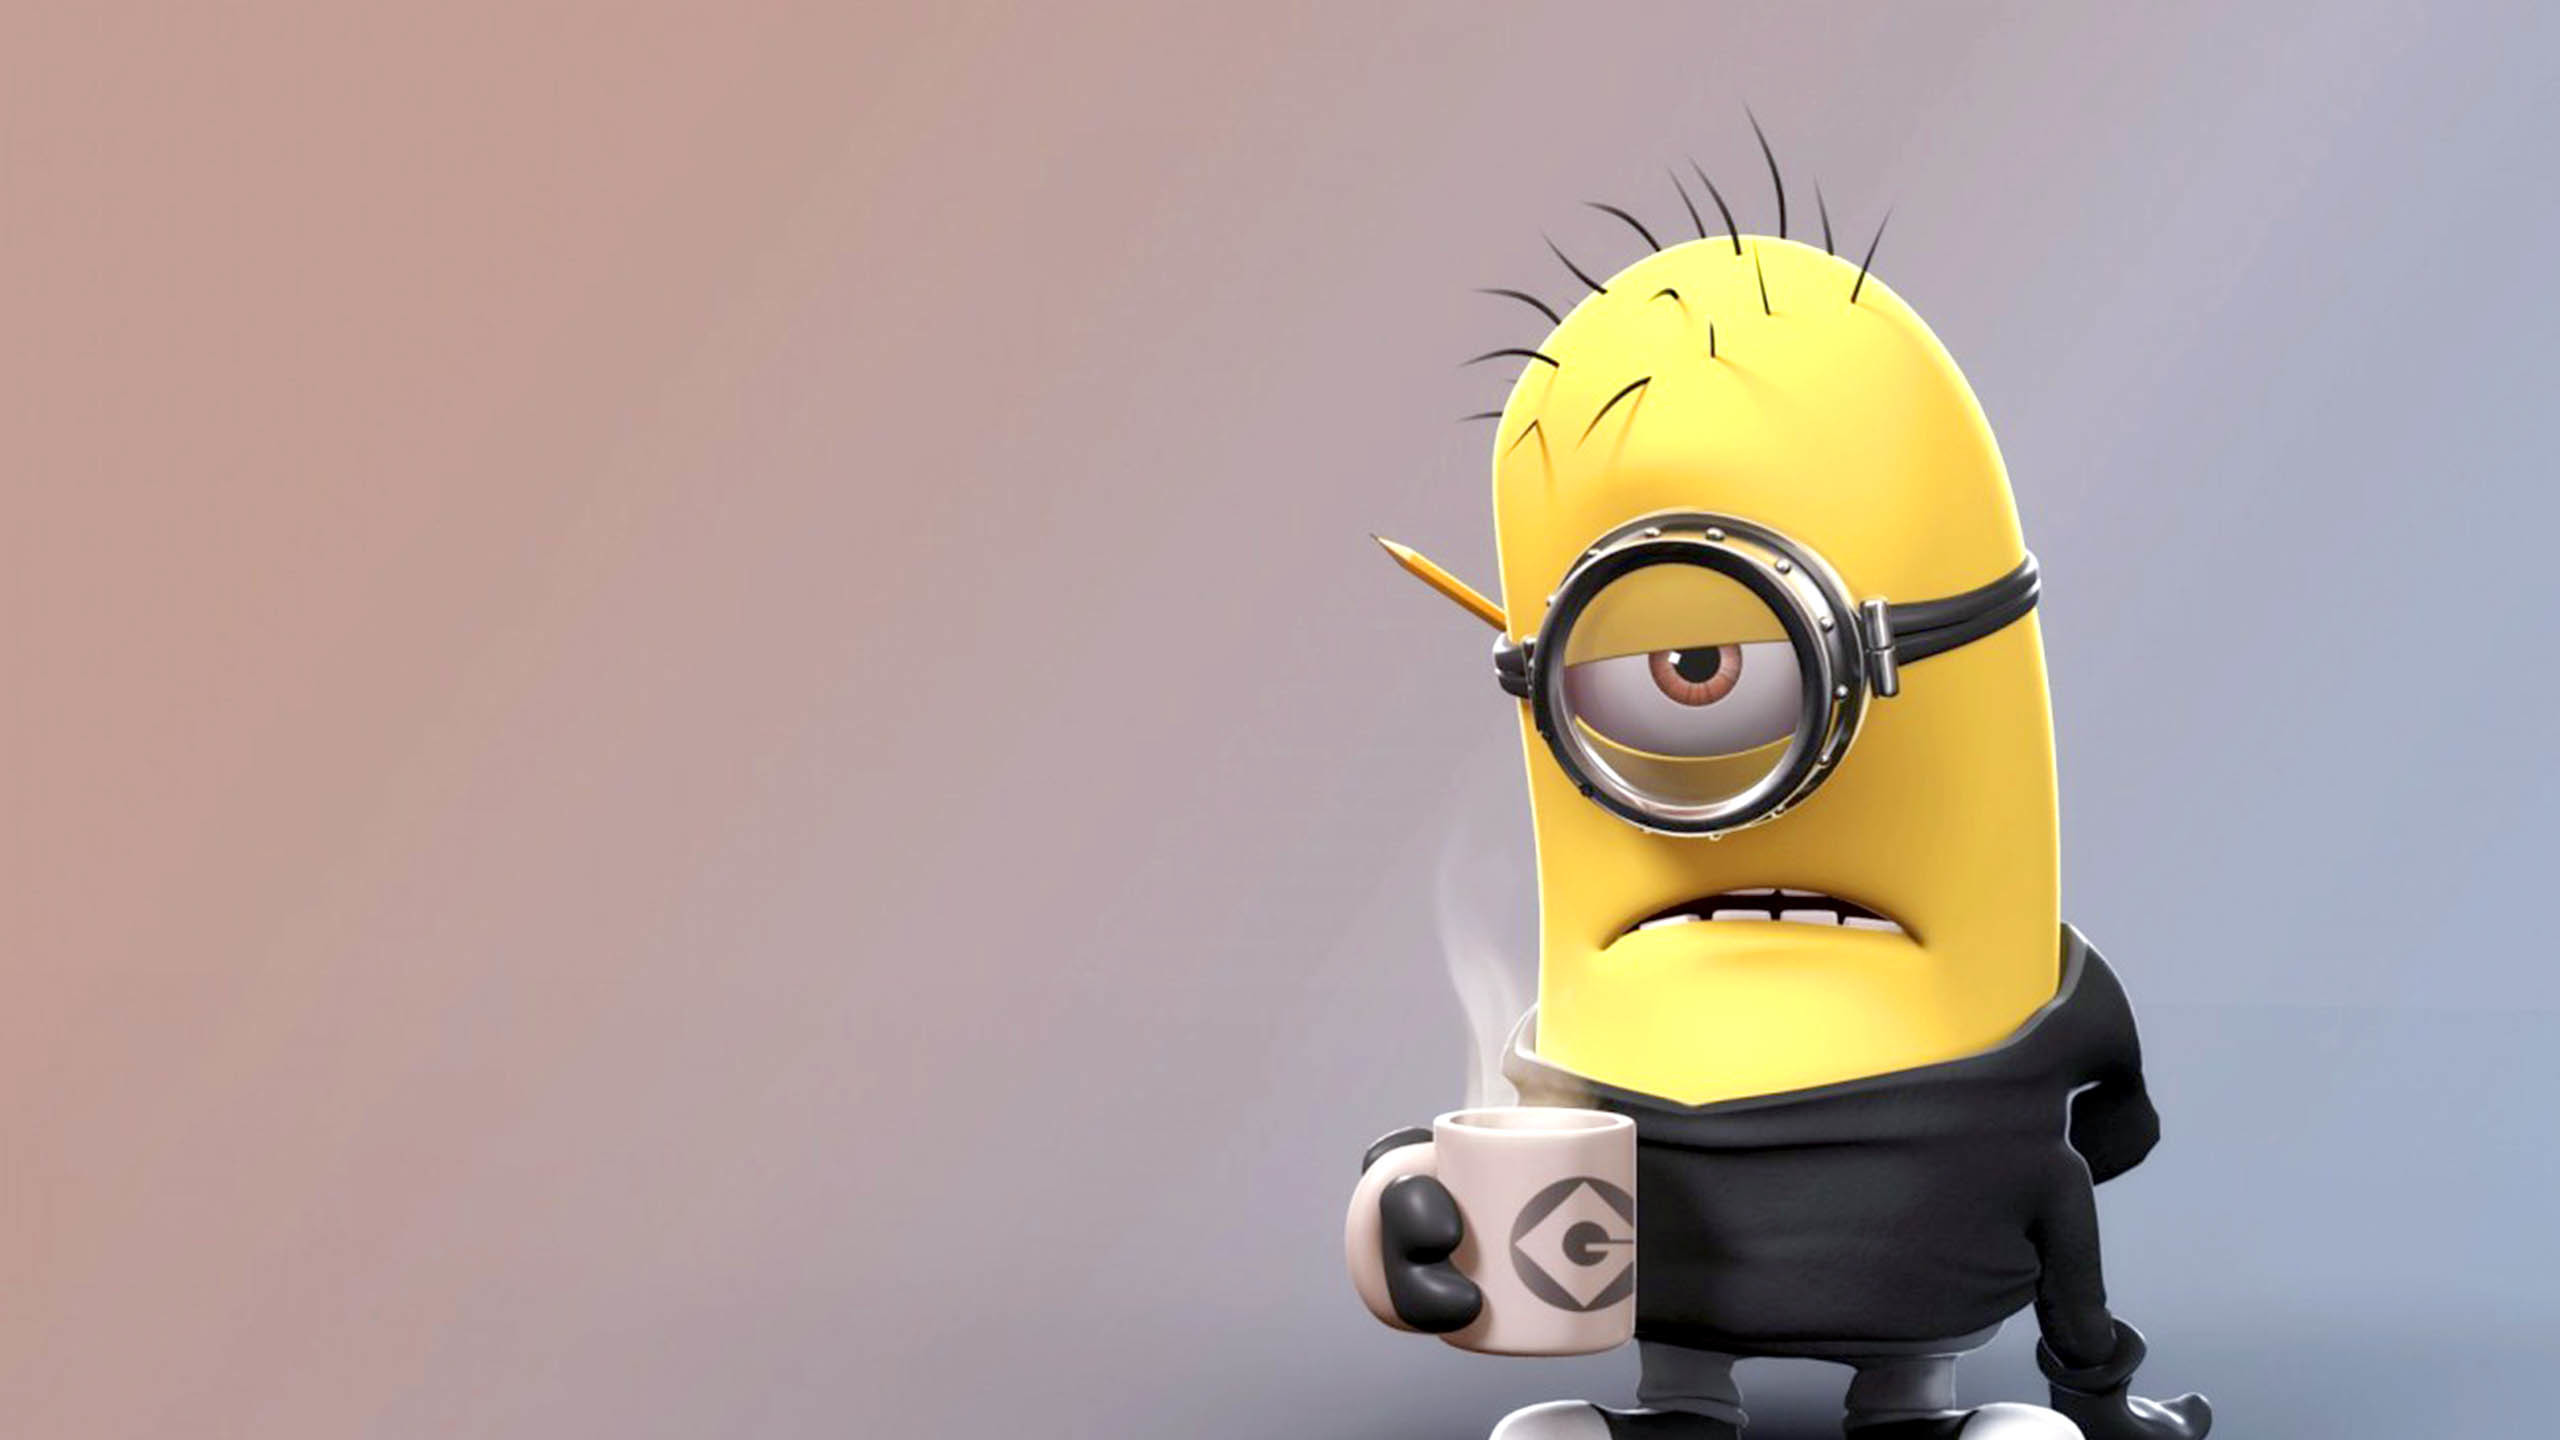 minion wallpaper backgrounds (66+ images)